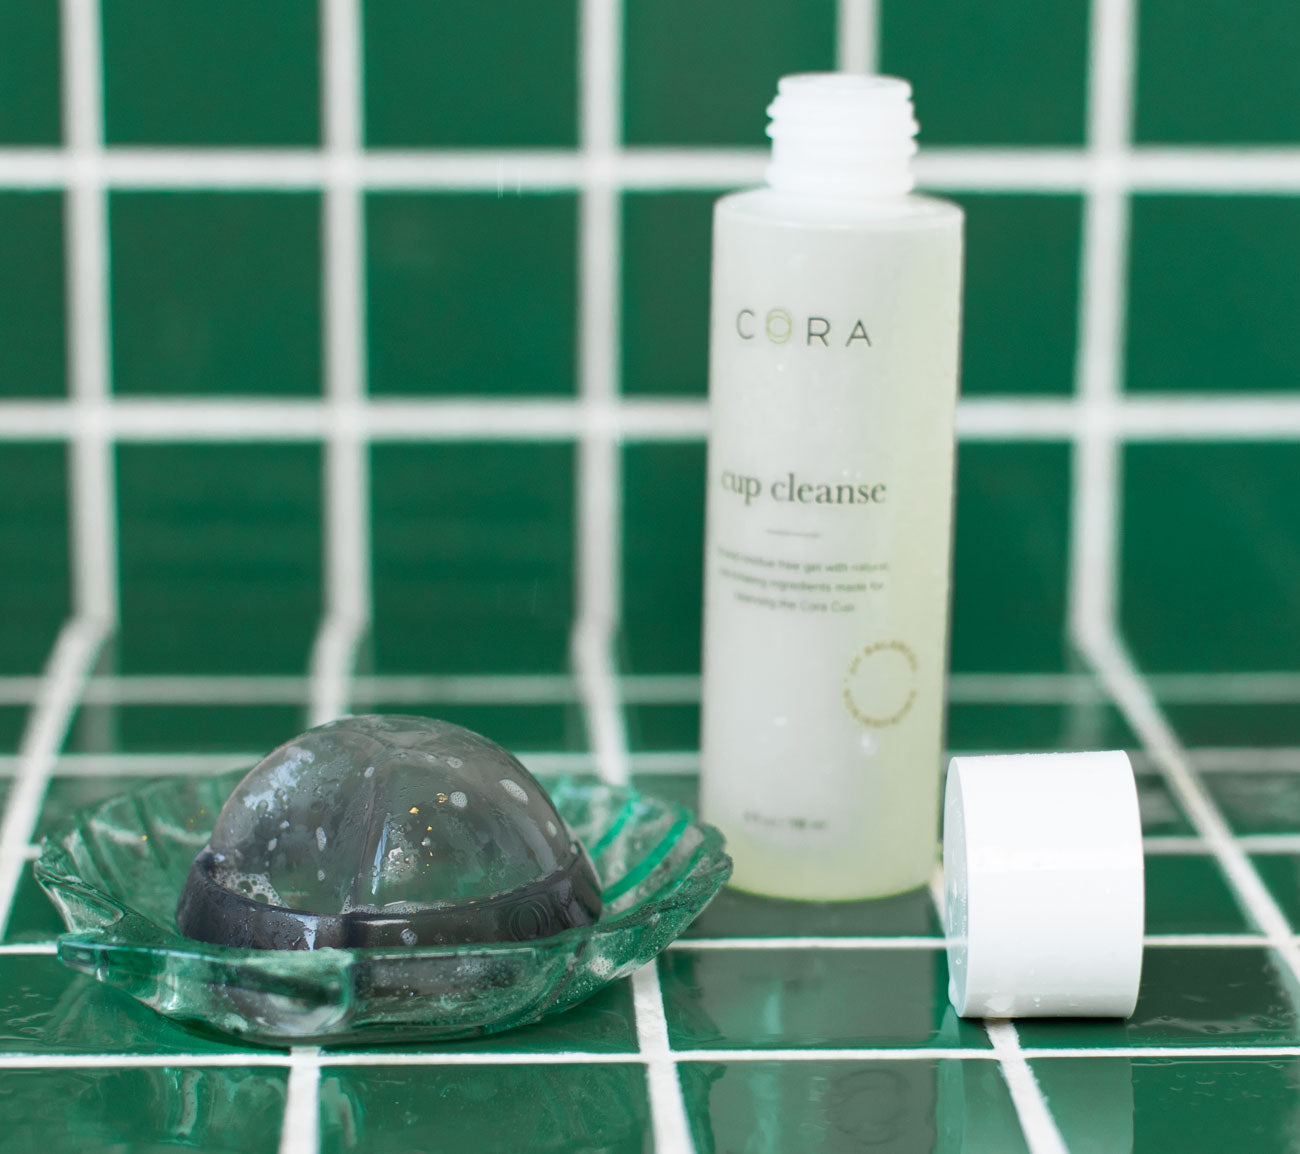 cora menstrual disc and cora cup cleanser on green tile